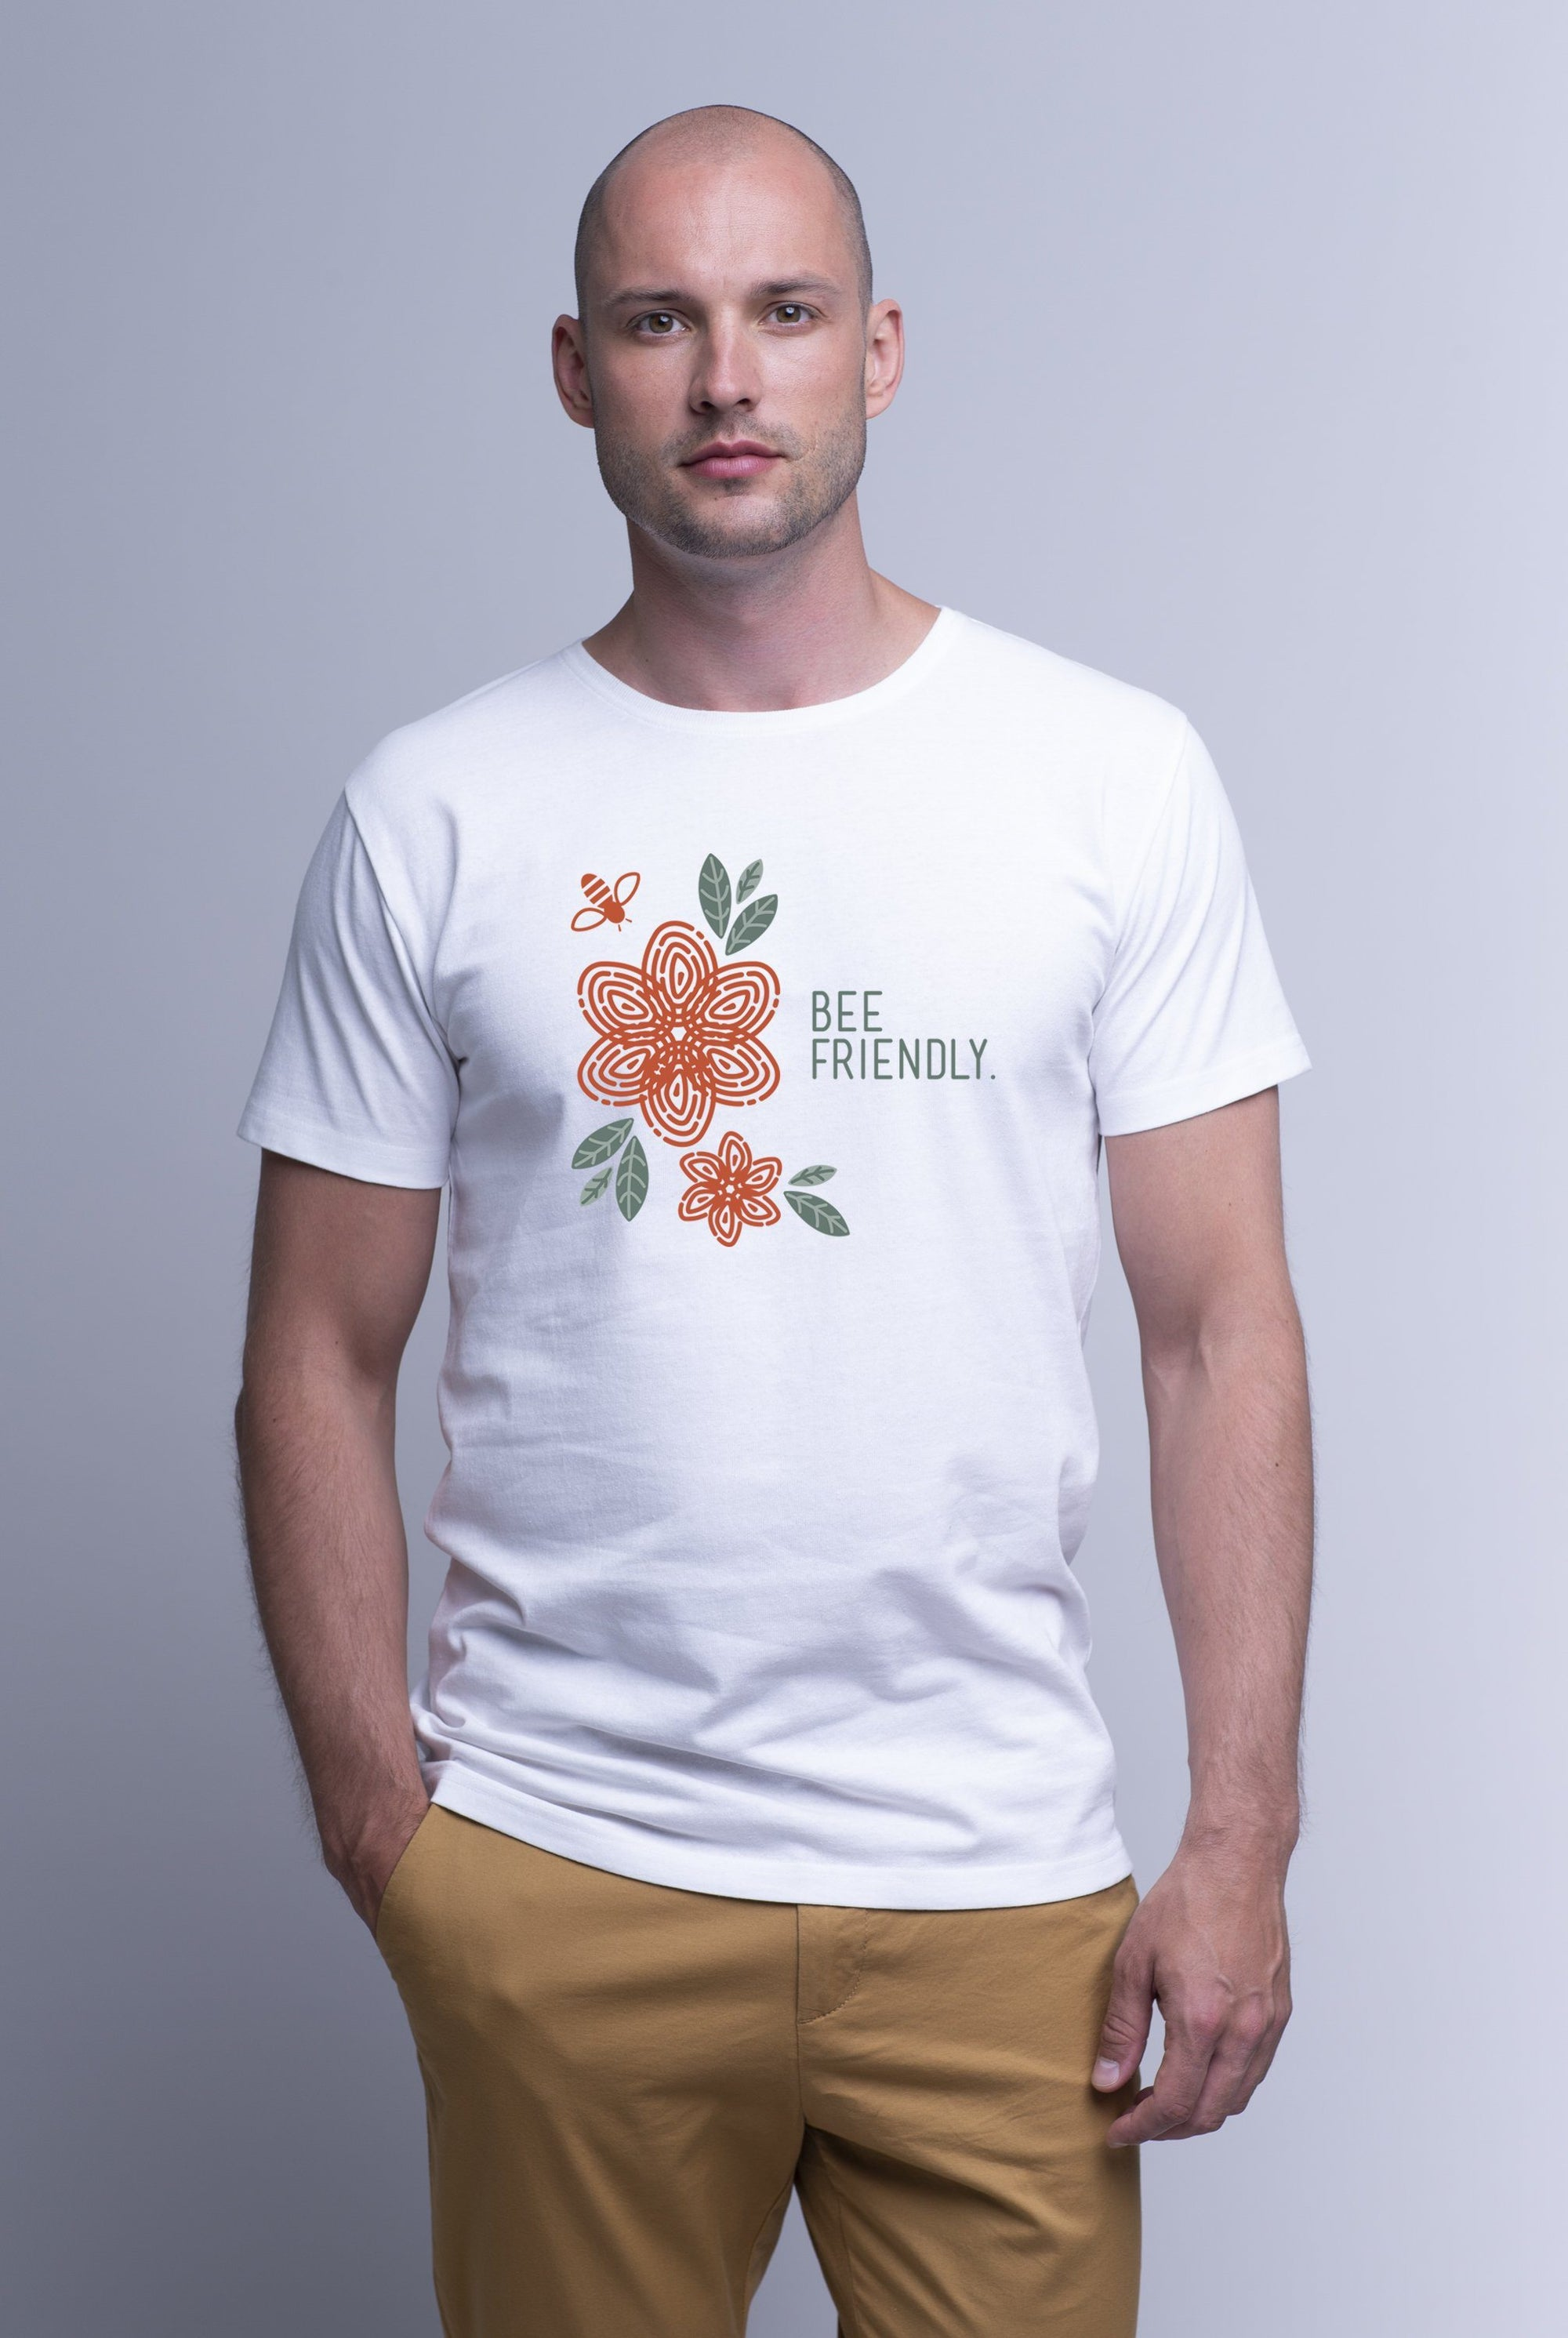 Weekendbee - Men's Bee Friendly - Charity T-Shirt - Weekendbee - sustainable sportswear